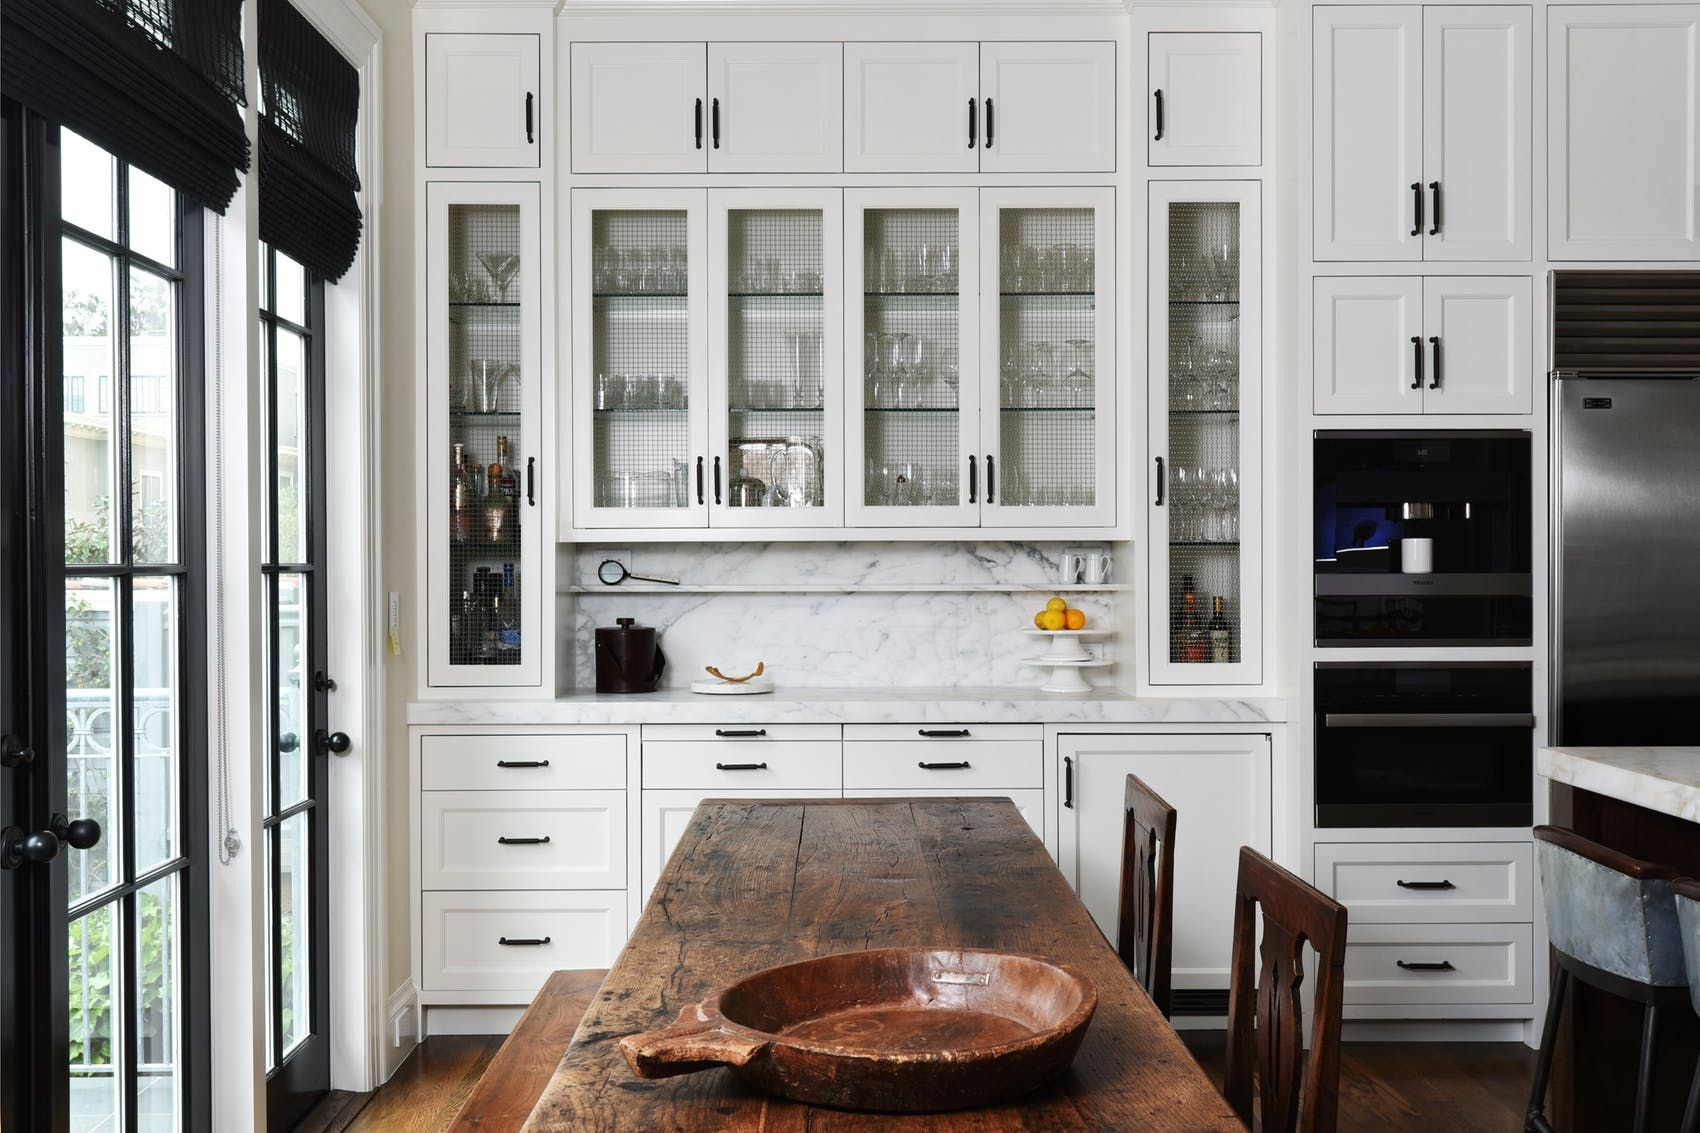 45 Charming Butlers Pantry Ideas What Is A Butlers Pantry